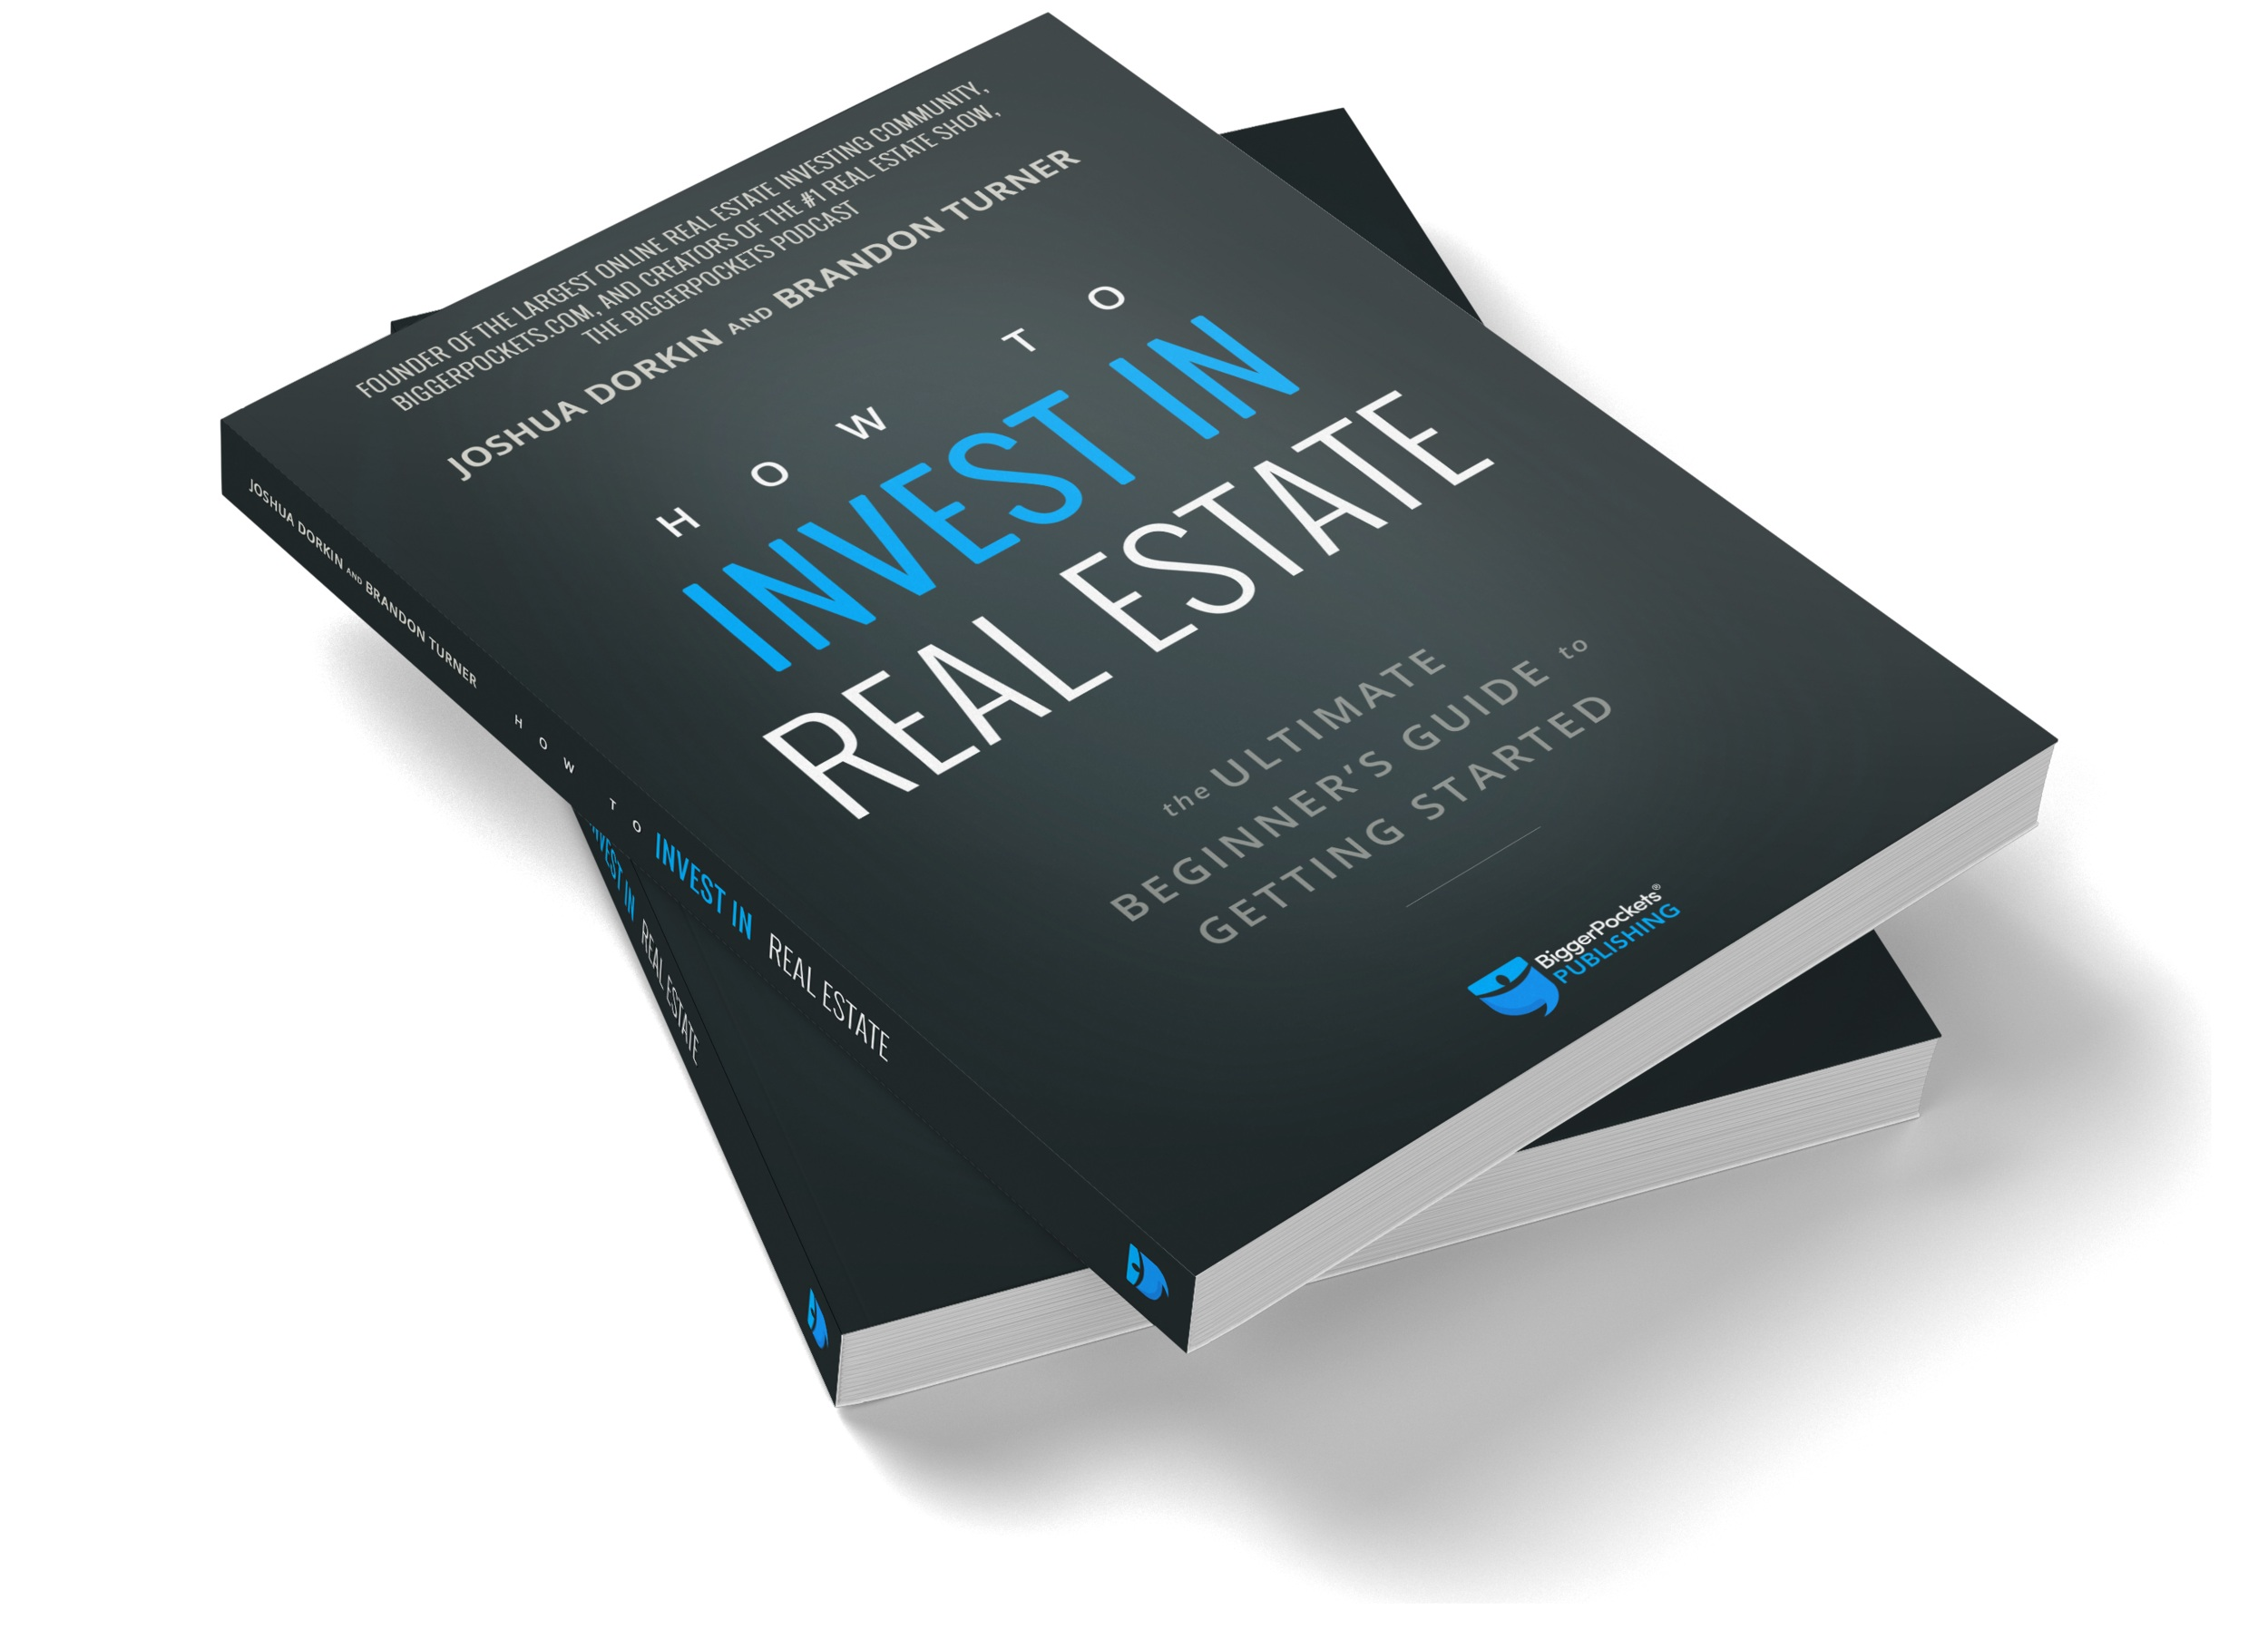 How to Invest in Real Estate - The Ultimate Beginner's Guide to Getting Started